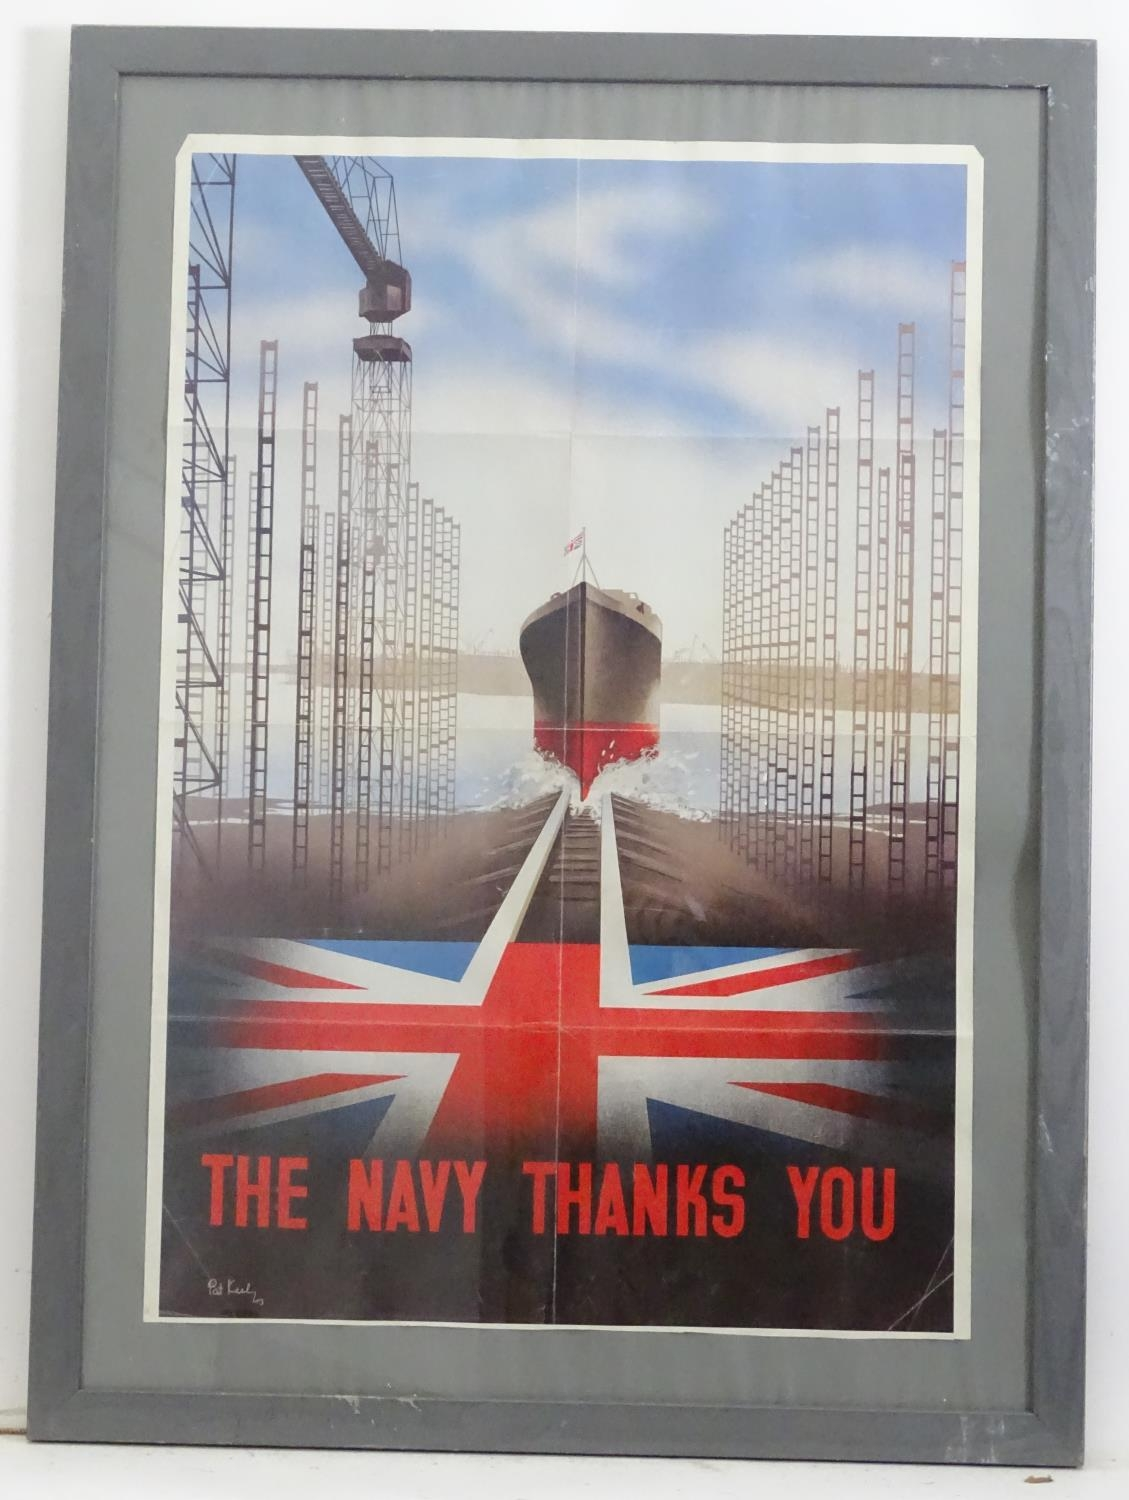 A Second World War / WW2 framed poster The Navy Thanks You signed Pat Kiely '43 Please Note - we